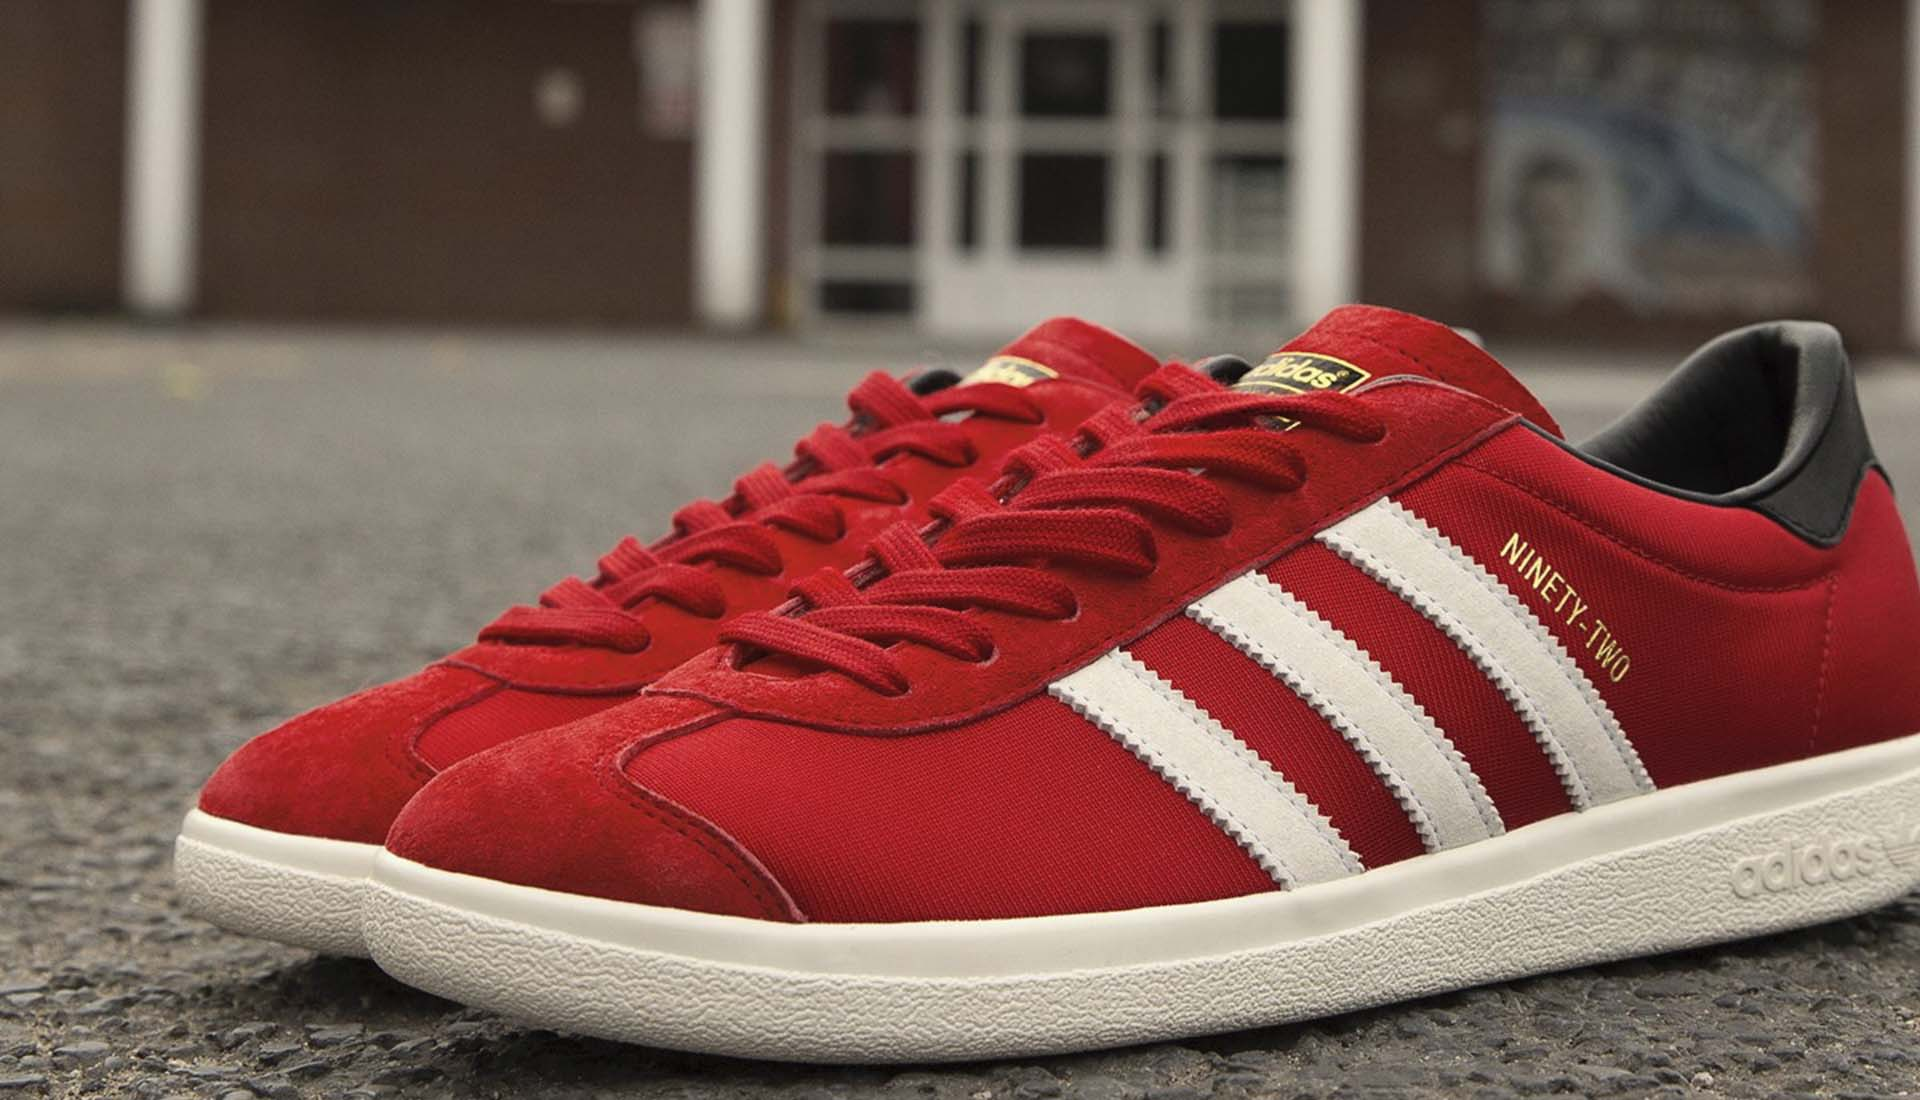 adidas manchester shoes 52% di sconto sglabs.it